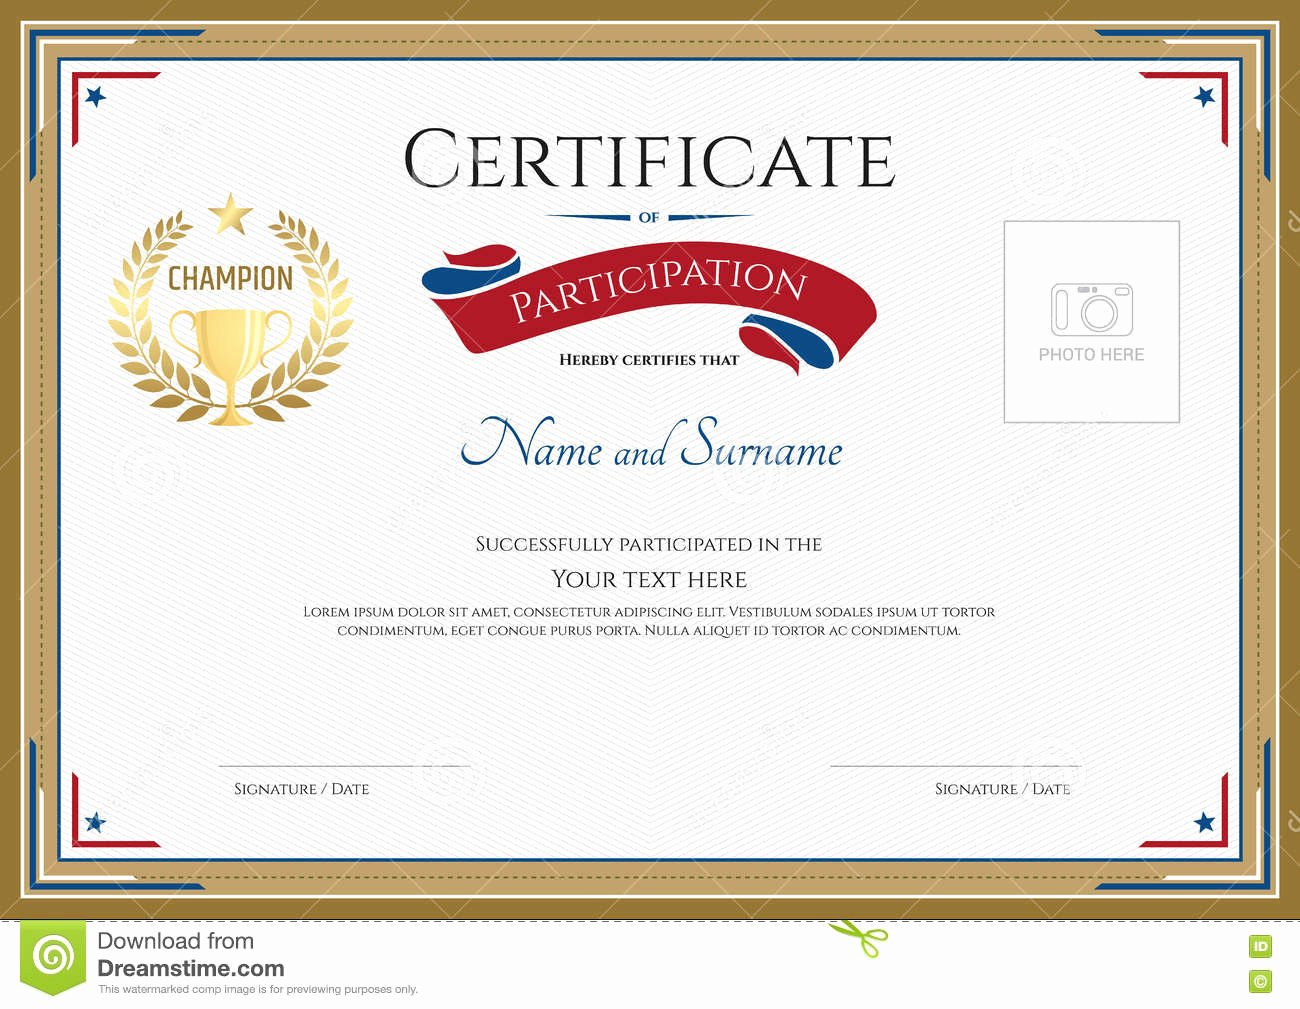 Certificate Participation Template Free Download